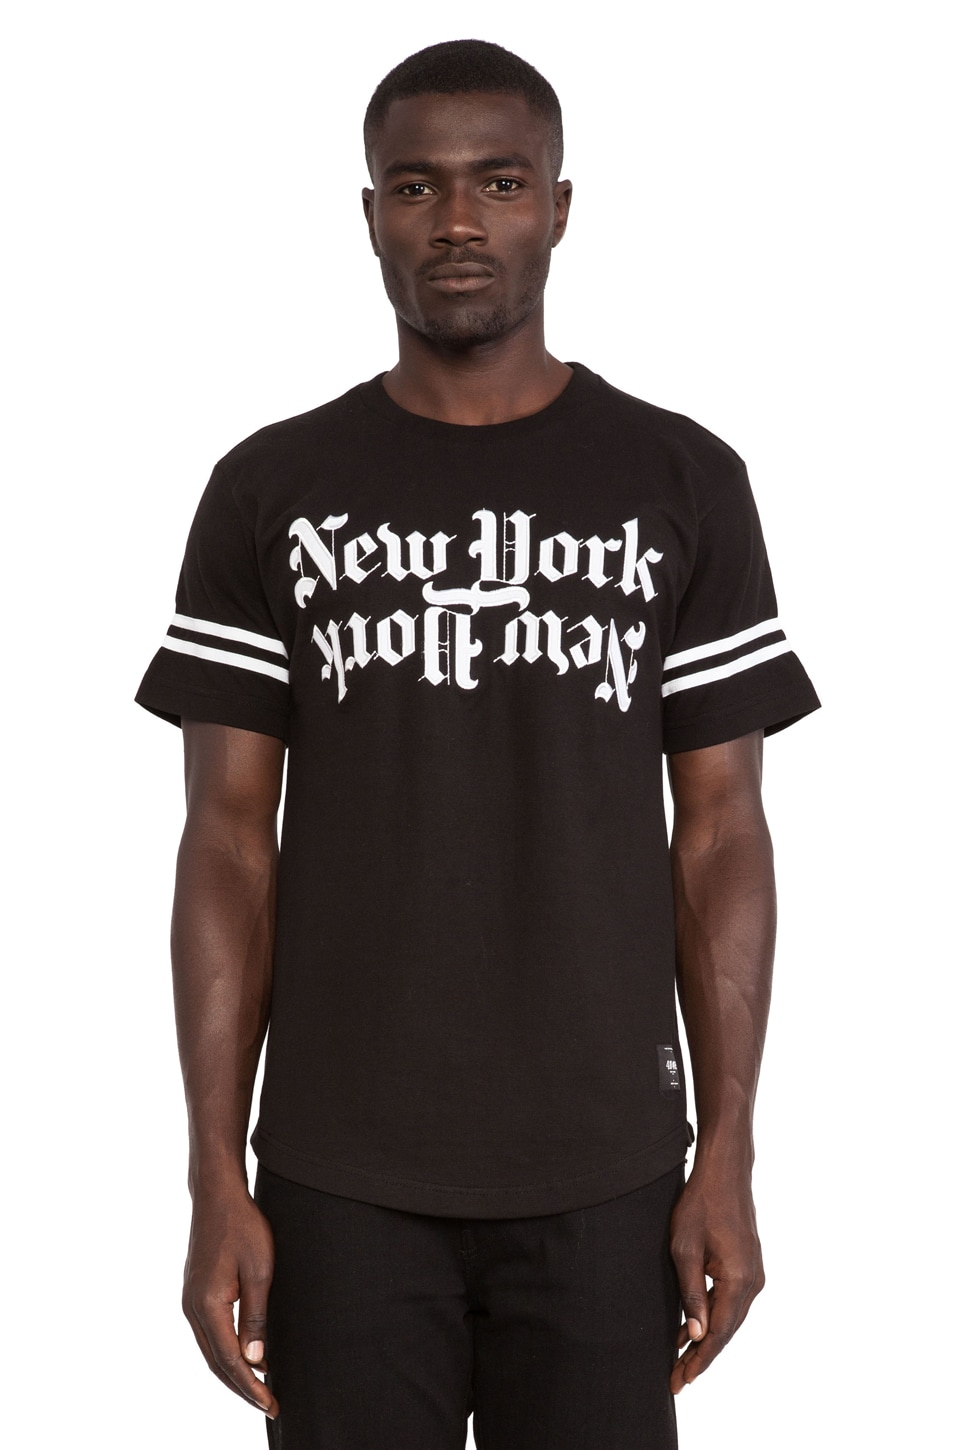 40 OZ NY New York Tee in Black